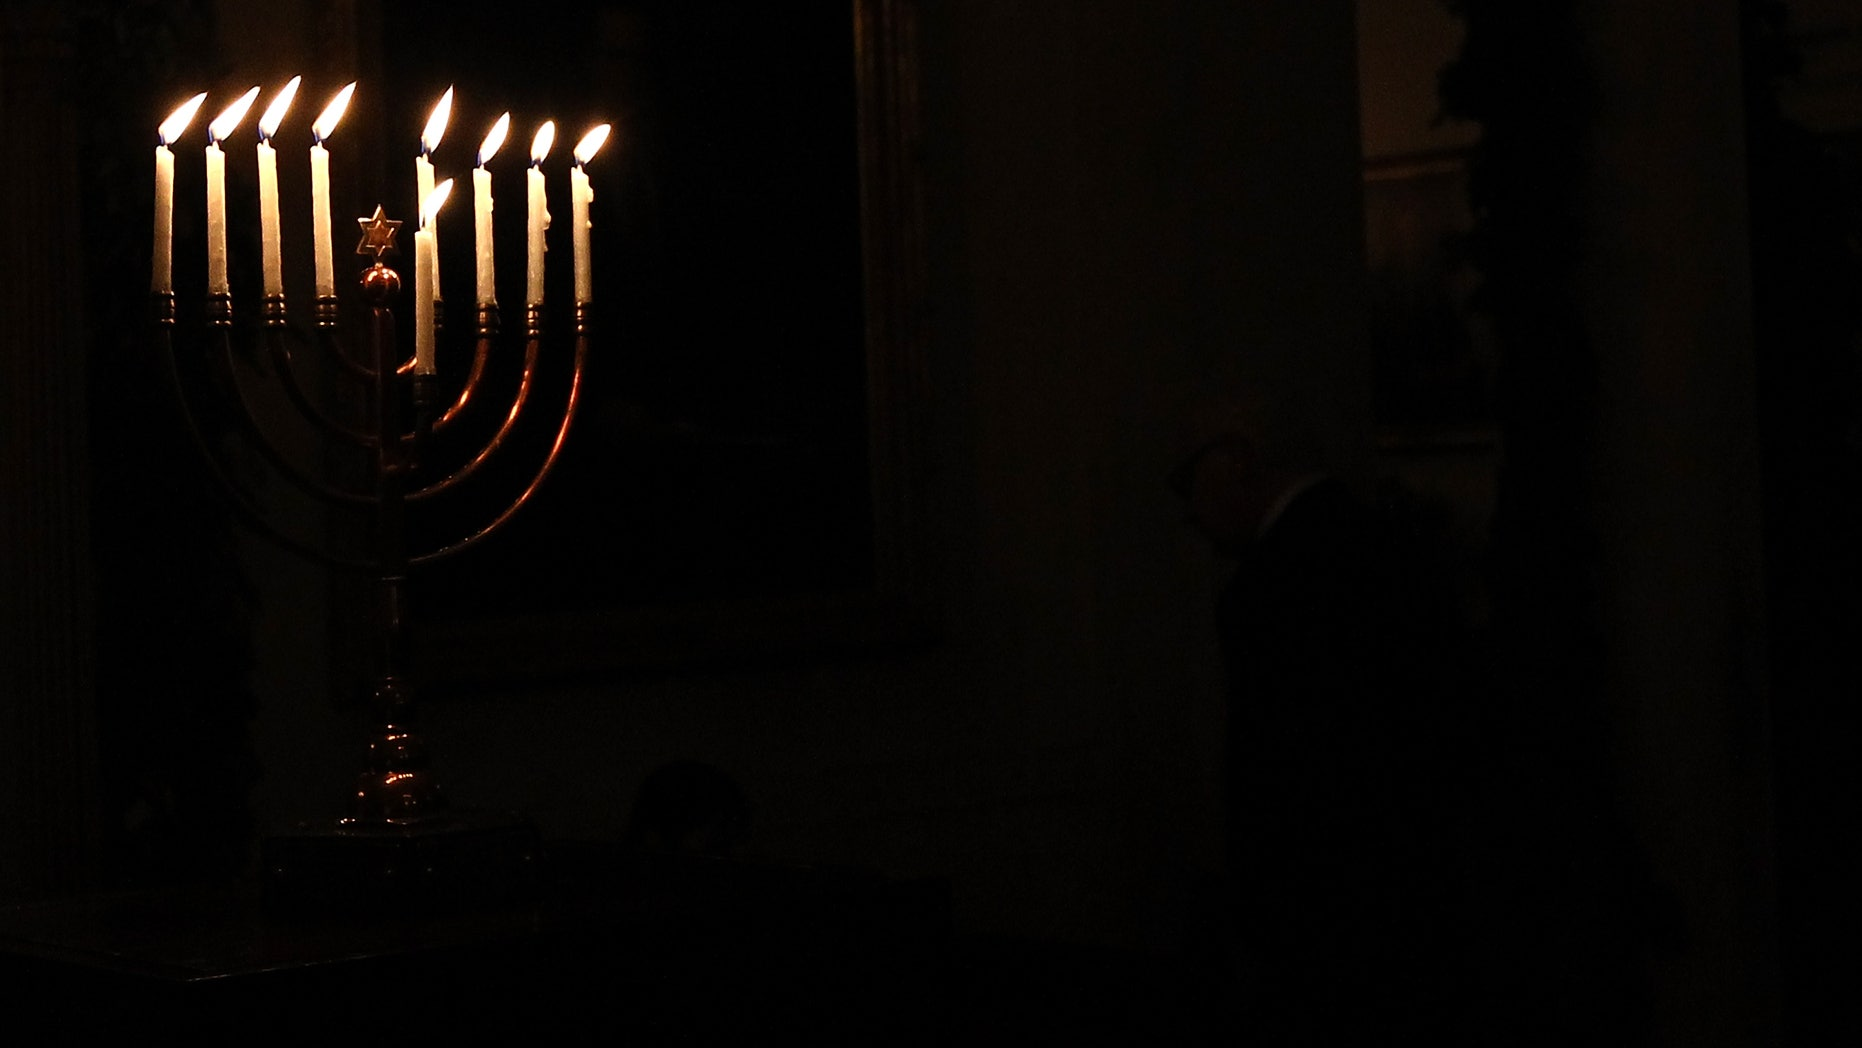 WASHINGTON, DC - DECEMBER 08:  (AFP OUT) A menorah burns in the White House after U.S. President Barack Obama delivered remarks during a Hanukkah reception December 8, 2011 in Washington, DC. The reception helped recognize and celebrate the Jewish tradition also known as the Festival of Lights.  (Photo by Win McNamee/Getty Images)